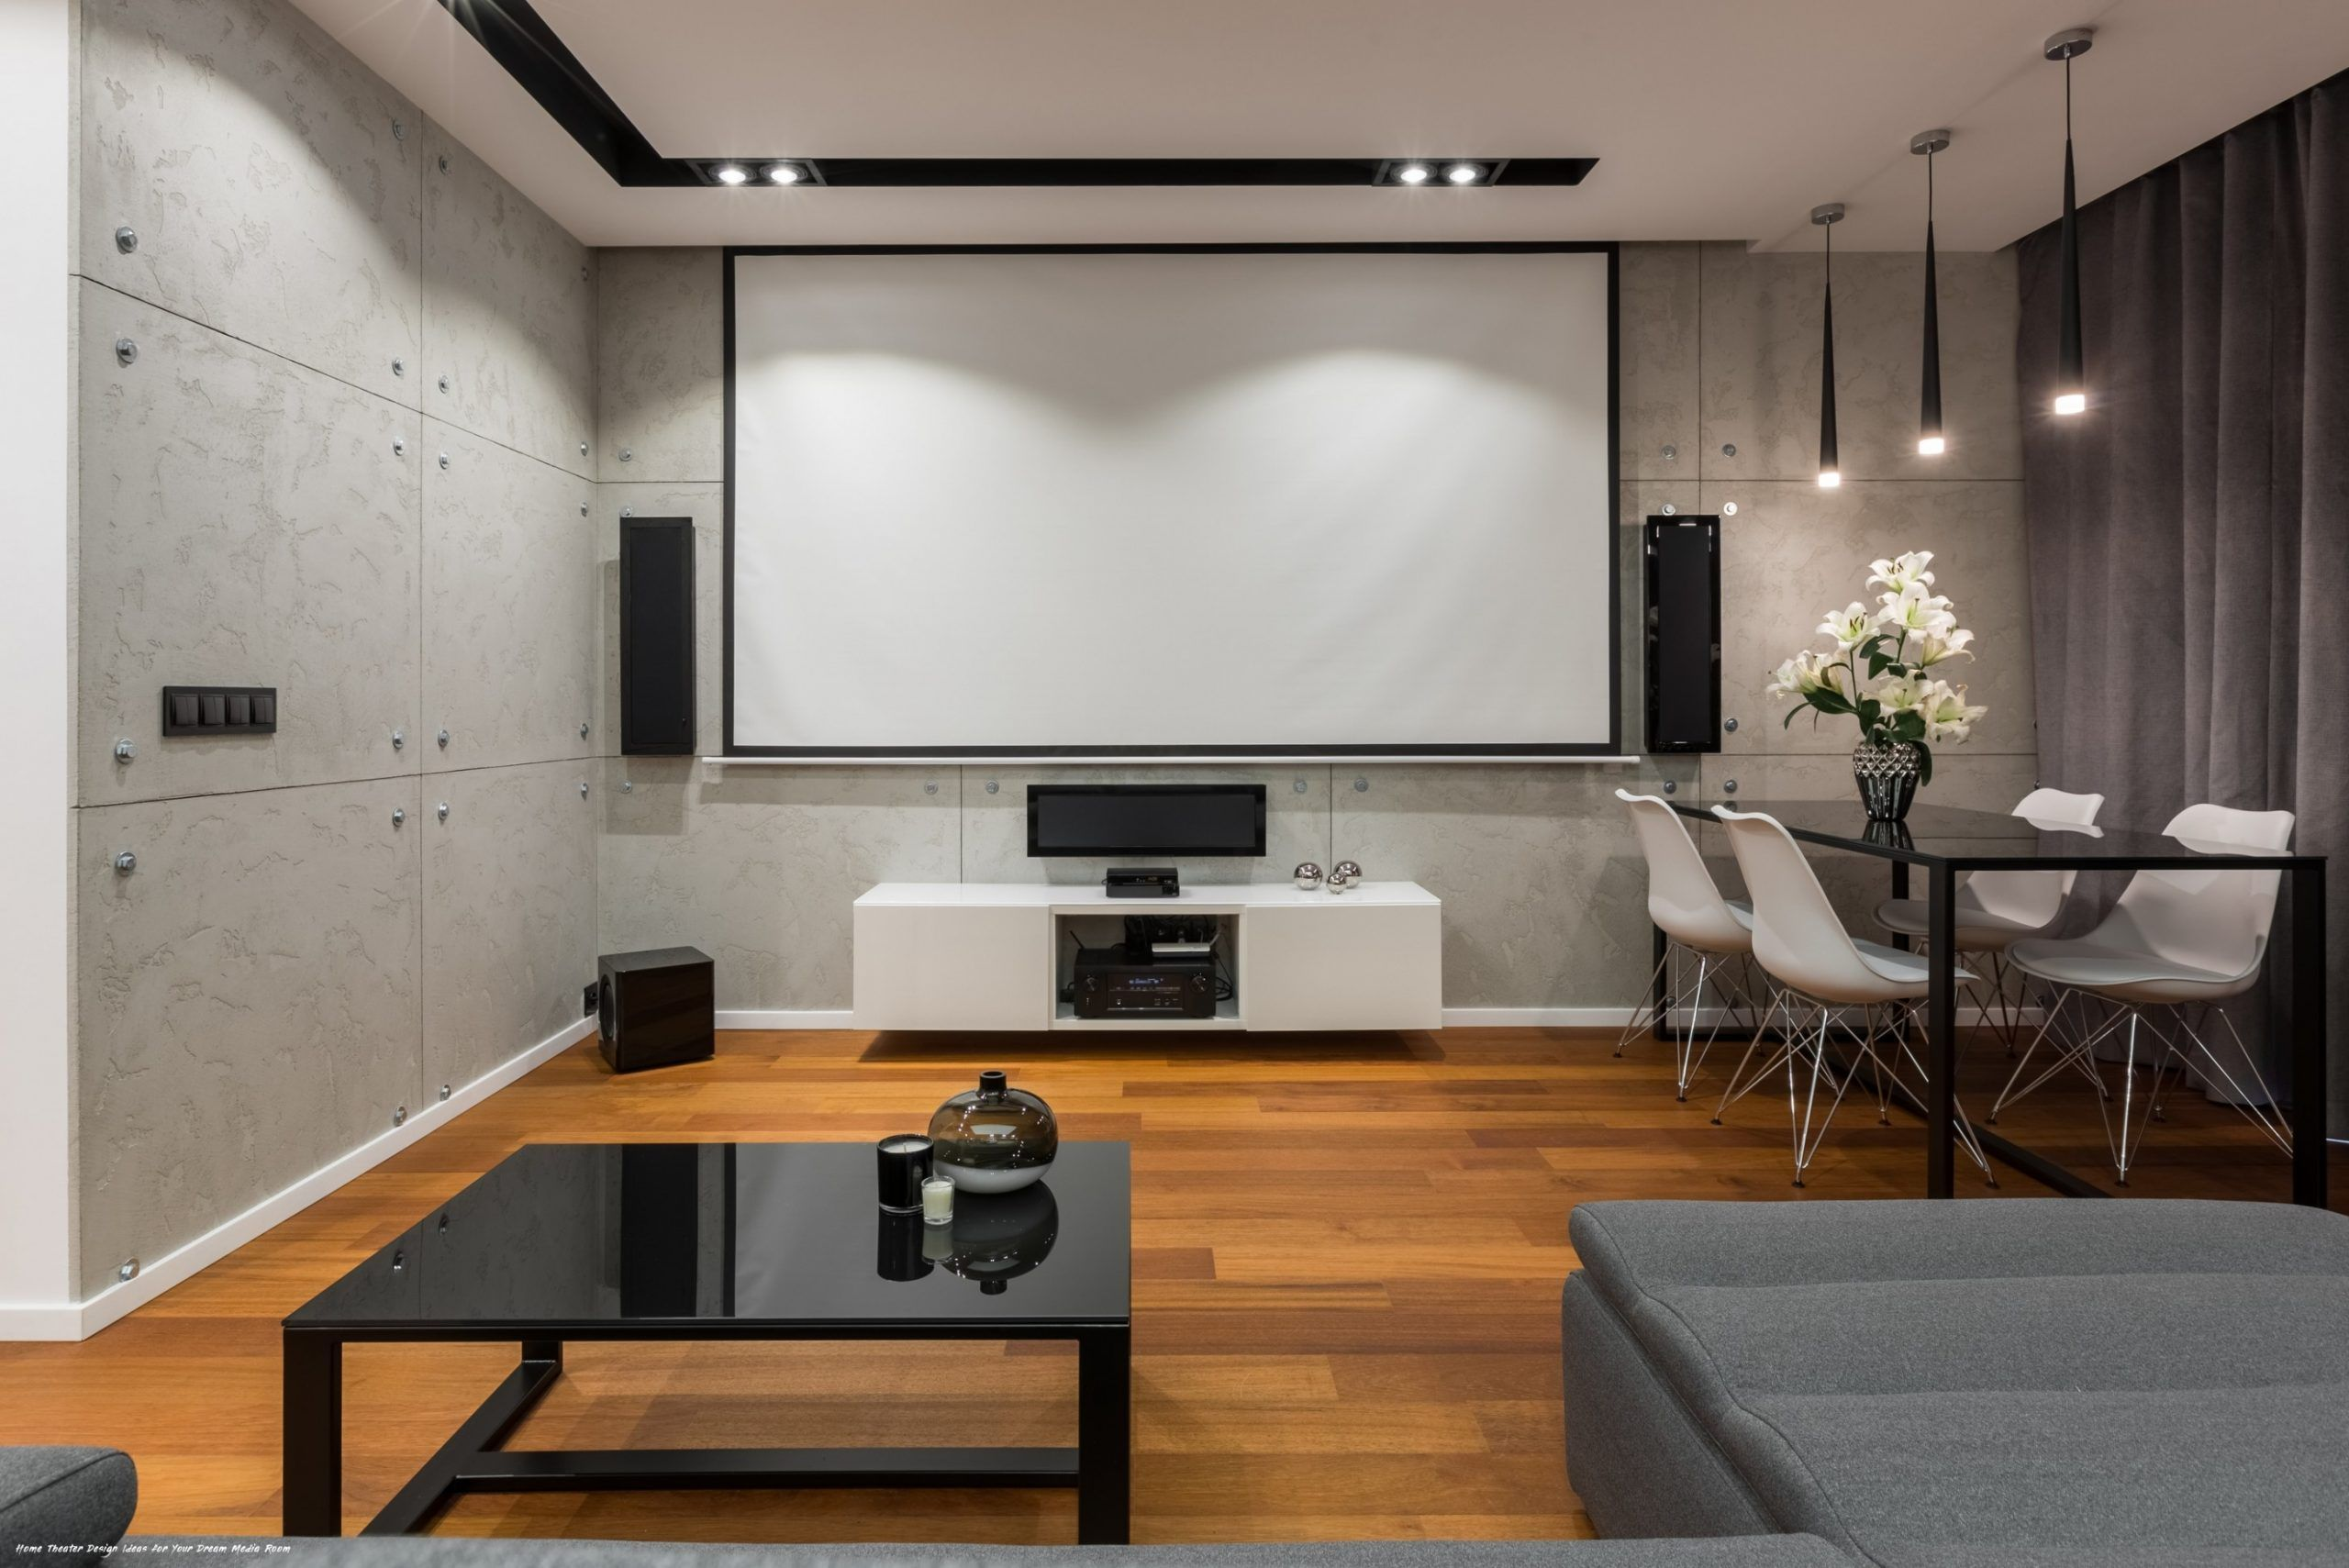 21 Pictures of Home Theater Design Ideas for Your Dream